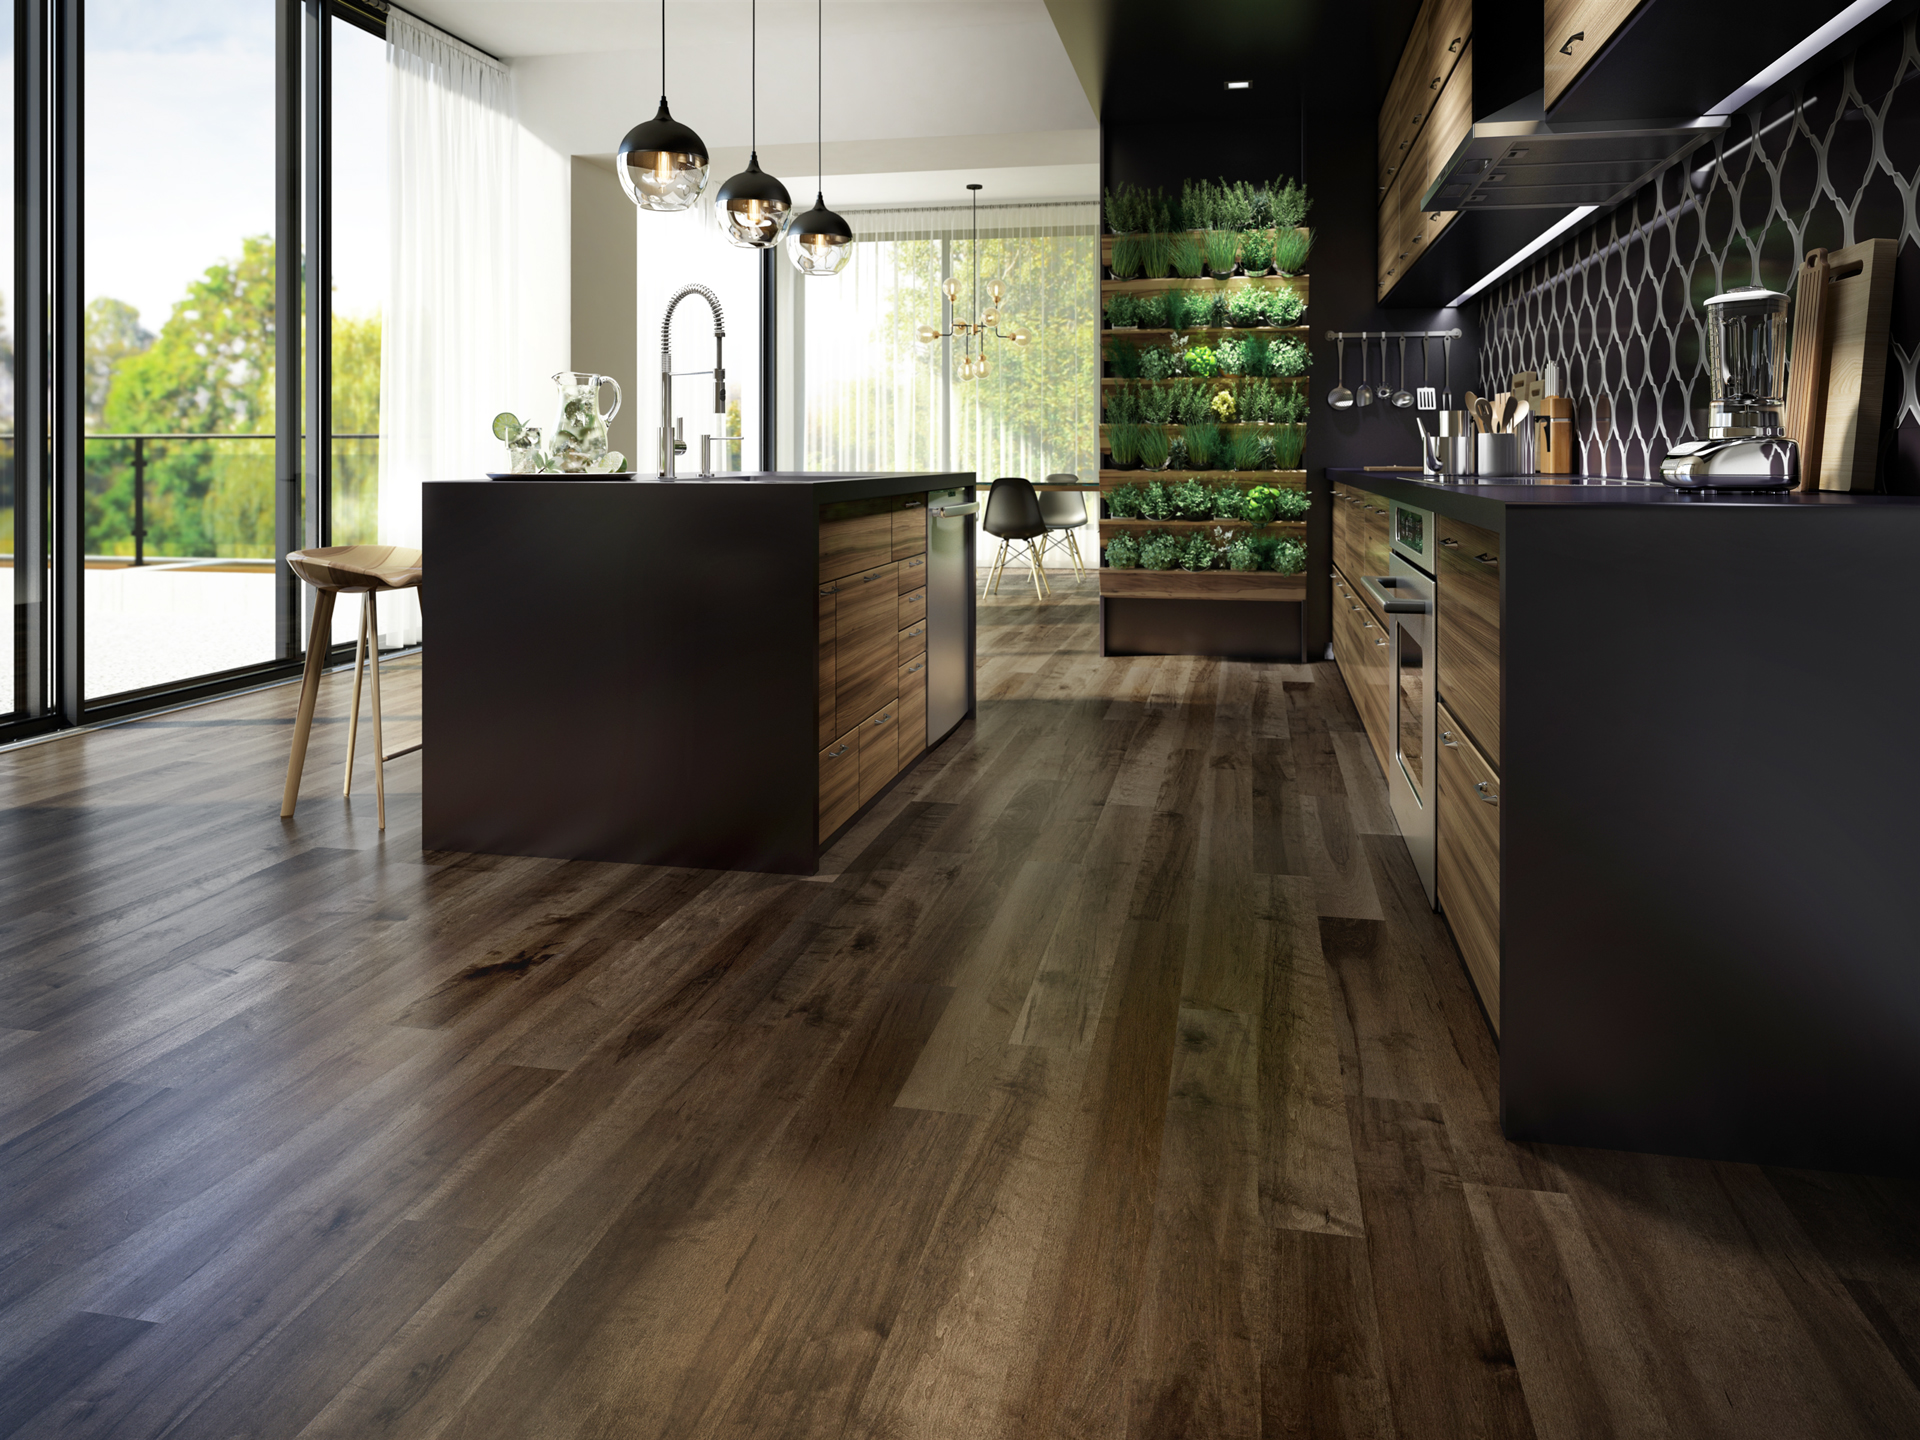 Shop Lauzon Hardwood Flooring And Discover Exceptional Floors And Find The  Right Product For Your Home Décor.